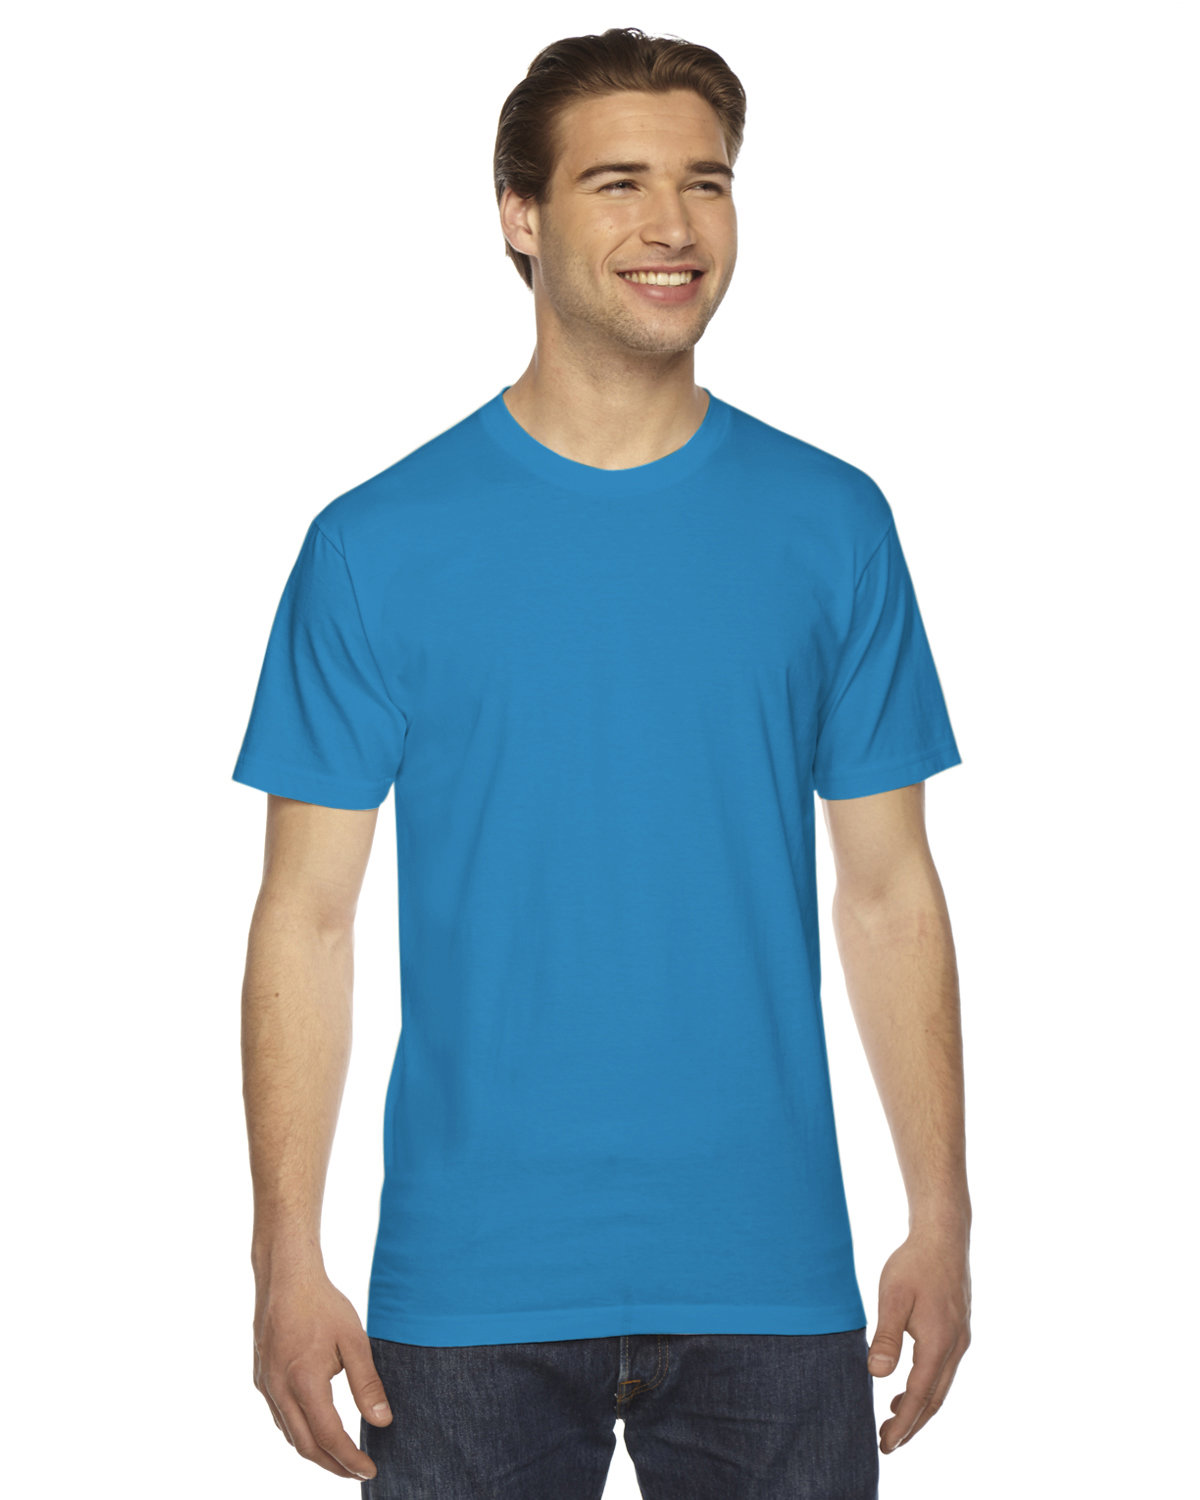 American Apparel Unisex Fine Jersey USA Made T-Shirt TEAL